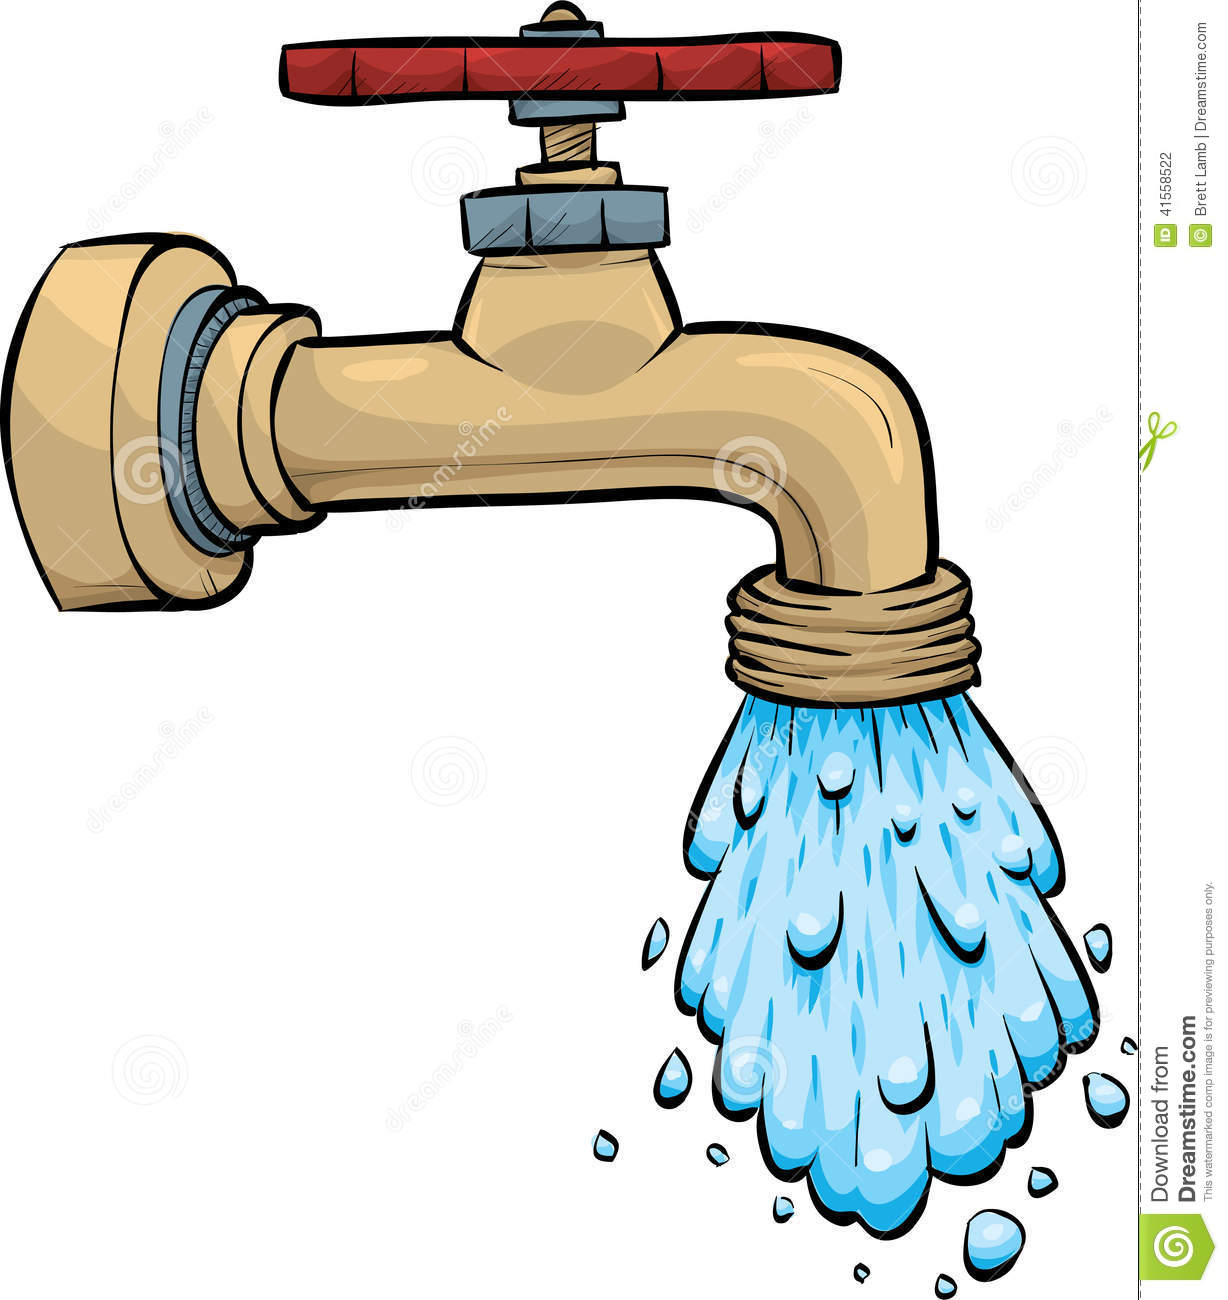 Drinking Water Faucet >> Water Faucet Stock Illustration - Image: 41558522